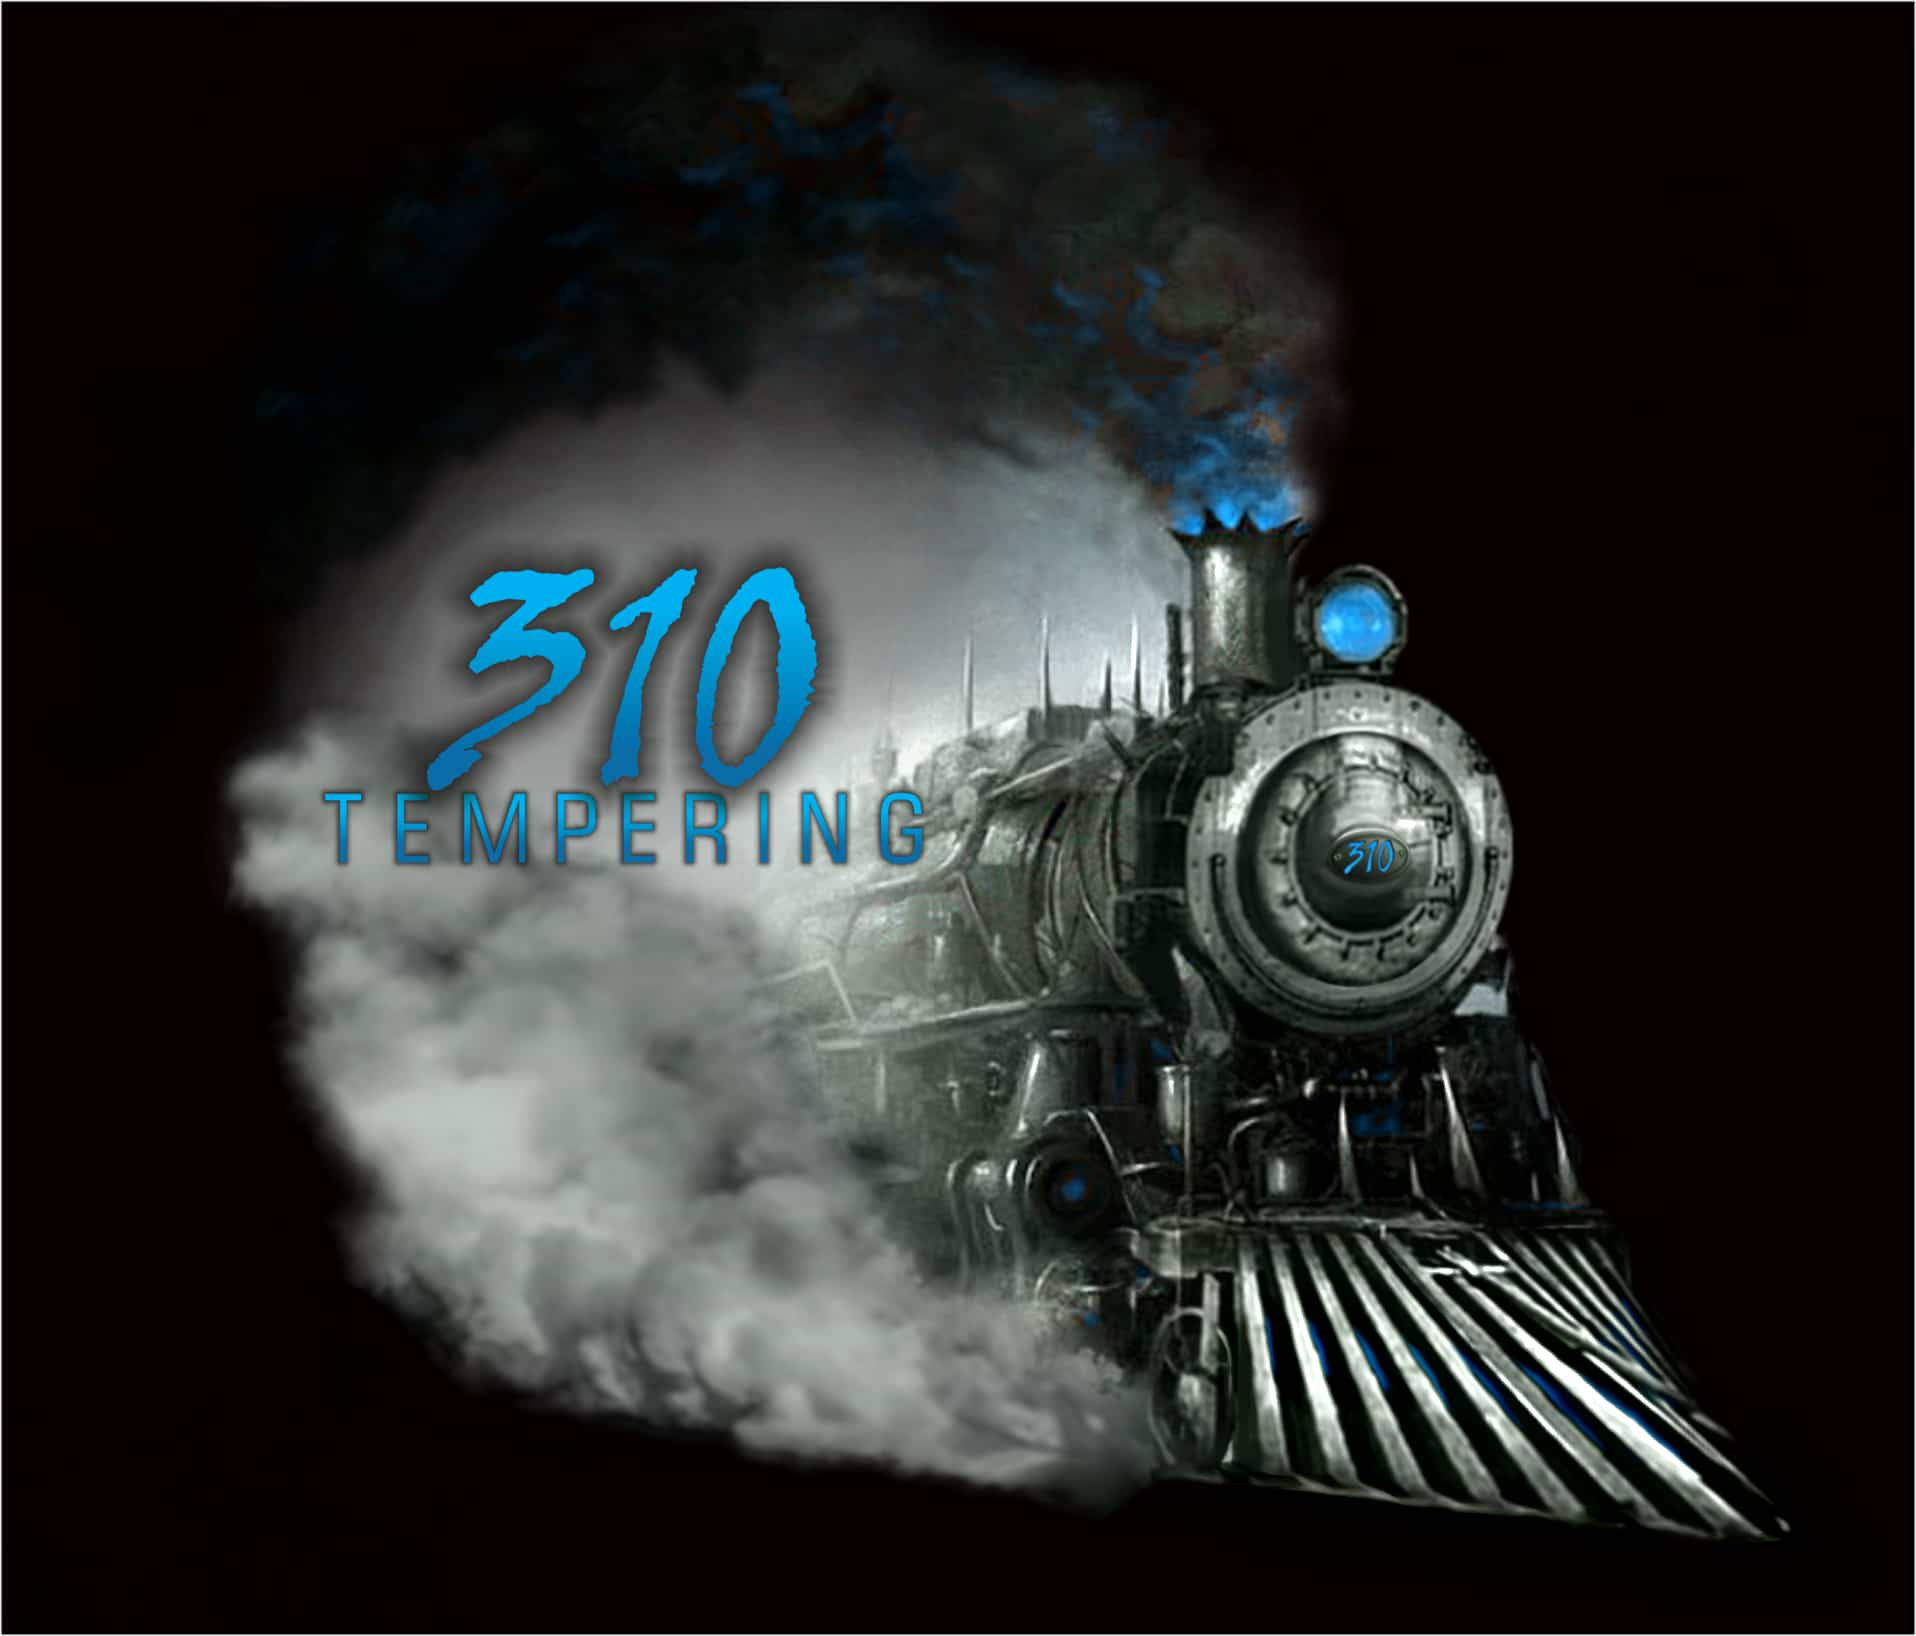 210 Tempering logo with steaming train